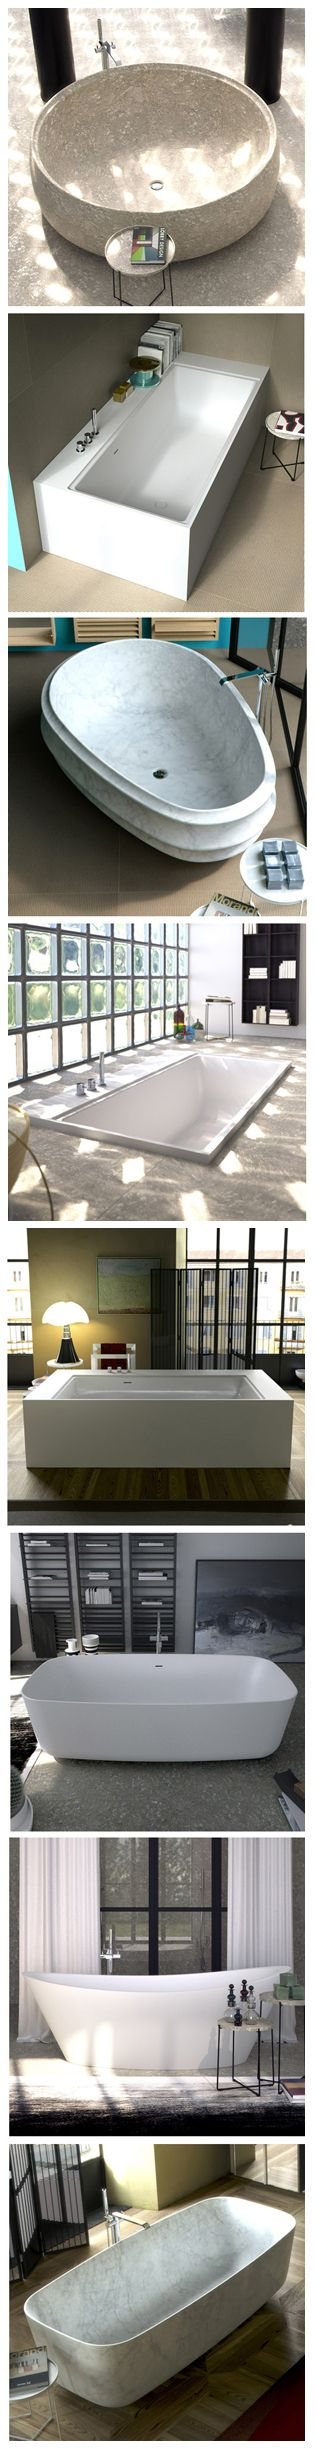 Natural stone or ASTONE®? Free-standing, wall placed, angular, recessed in the floor? Soft and rounded or squared lines? Choose your own #personal #style! ___ #Bathtubs » www.signweb.it/listaprodotti/?tipologia=vasche